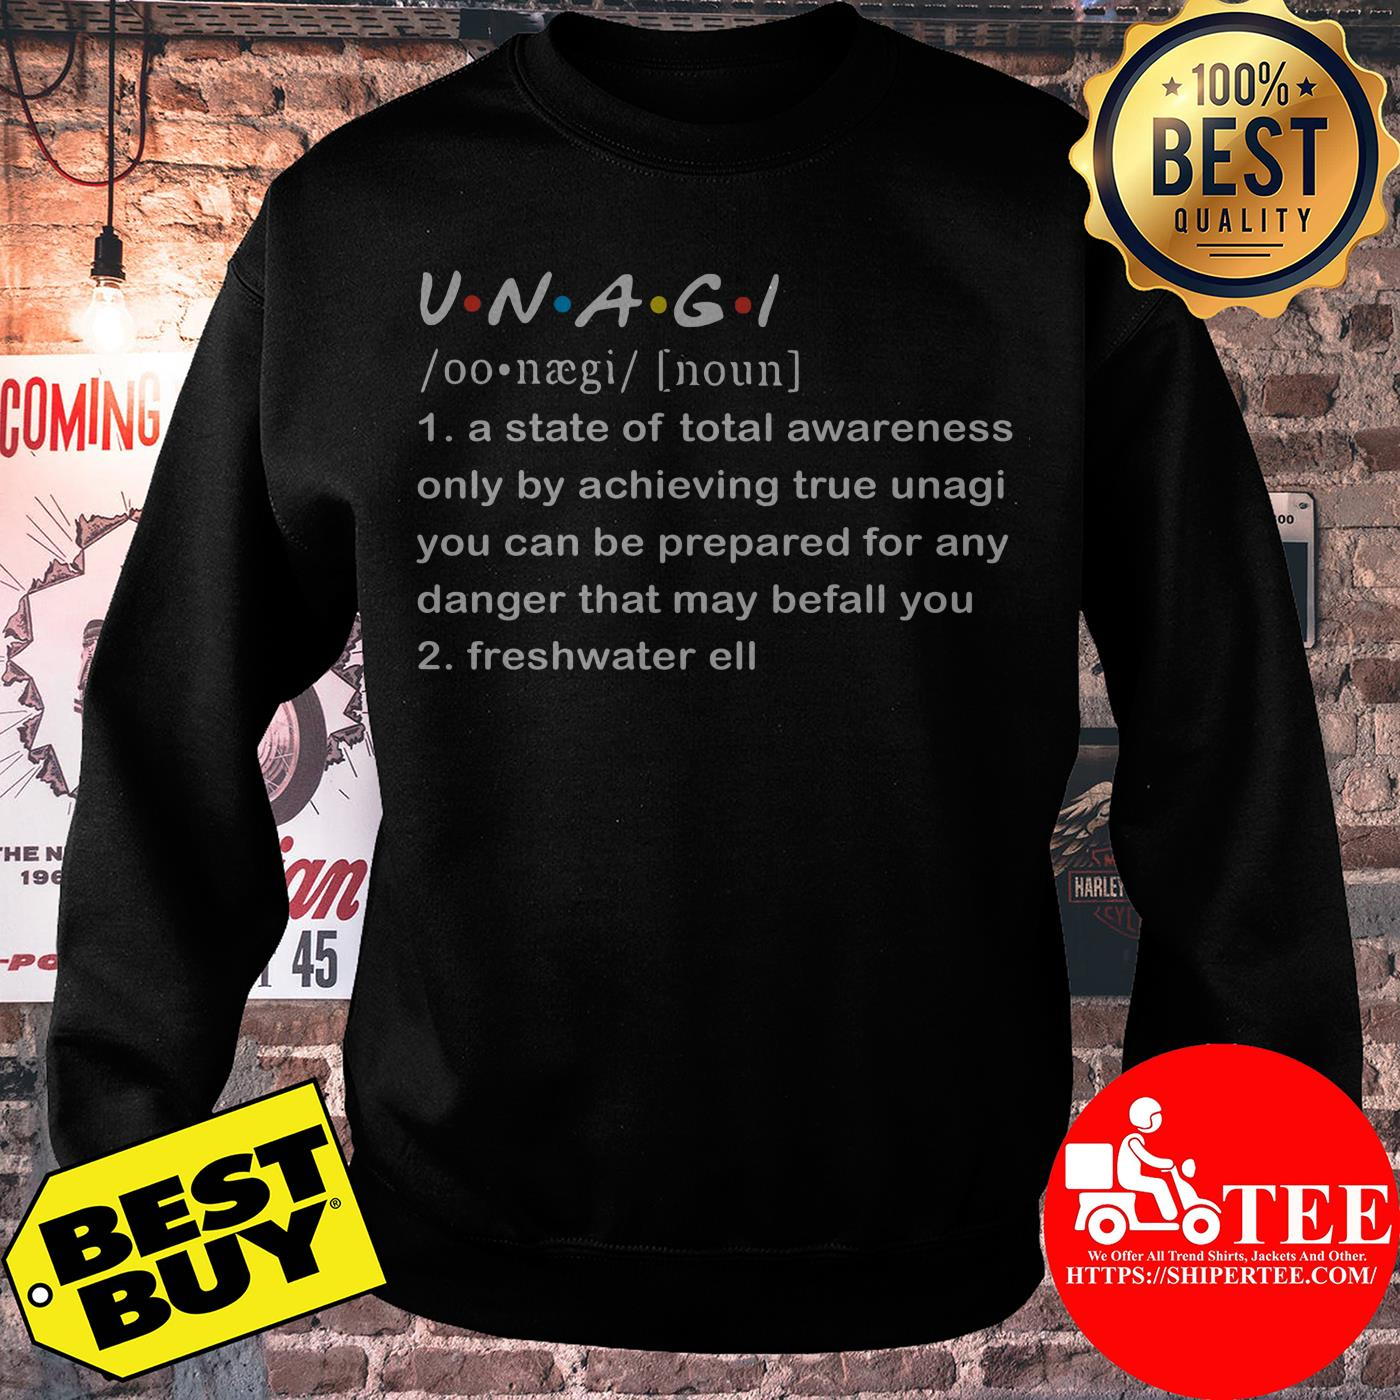 UNAGI meaning a state of total awareness only by achieving true unagi sweatshirt